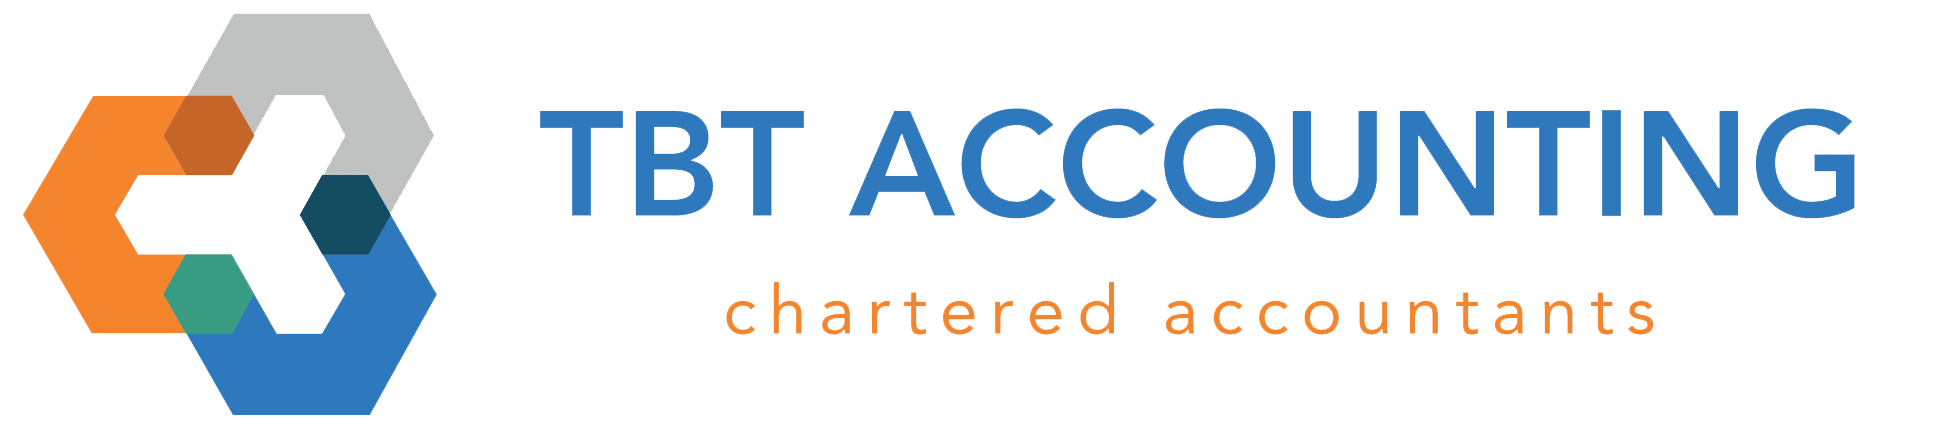 TBT Accounting logo